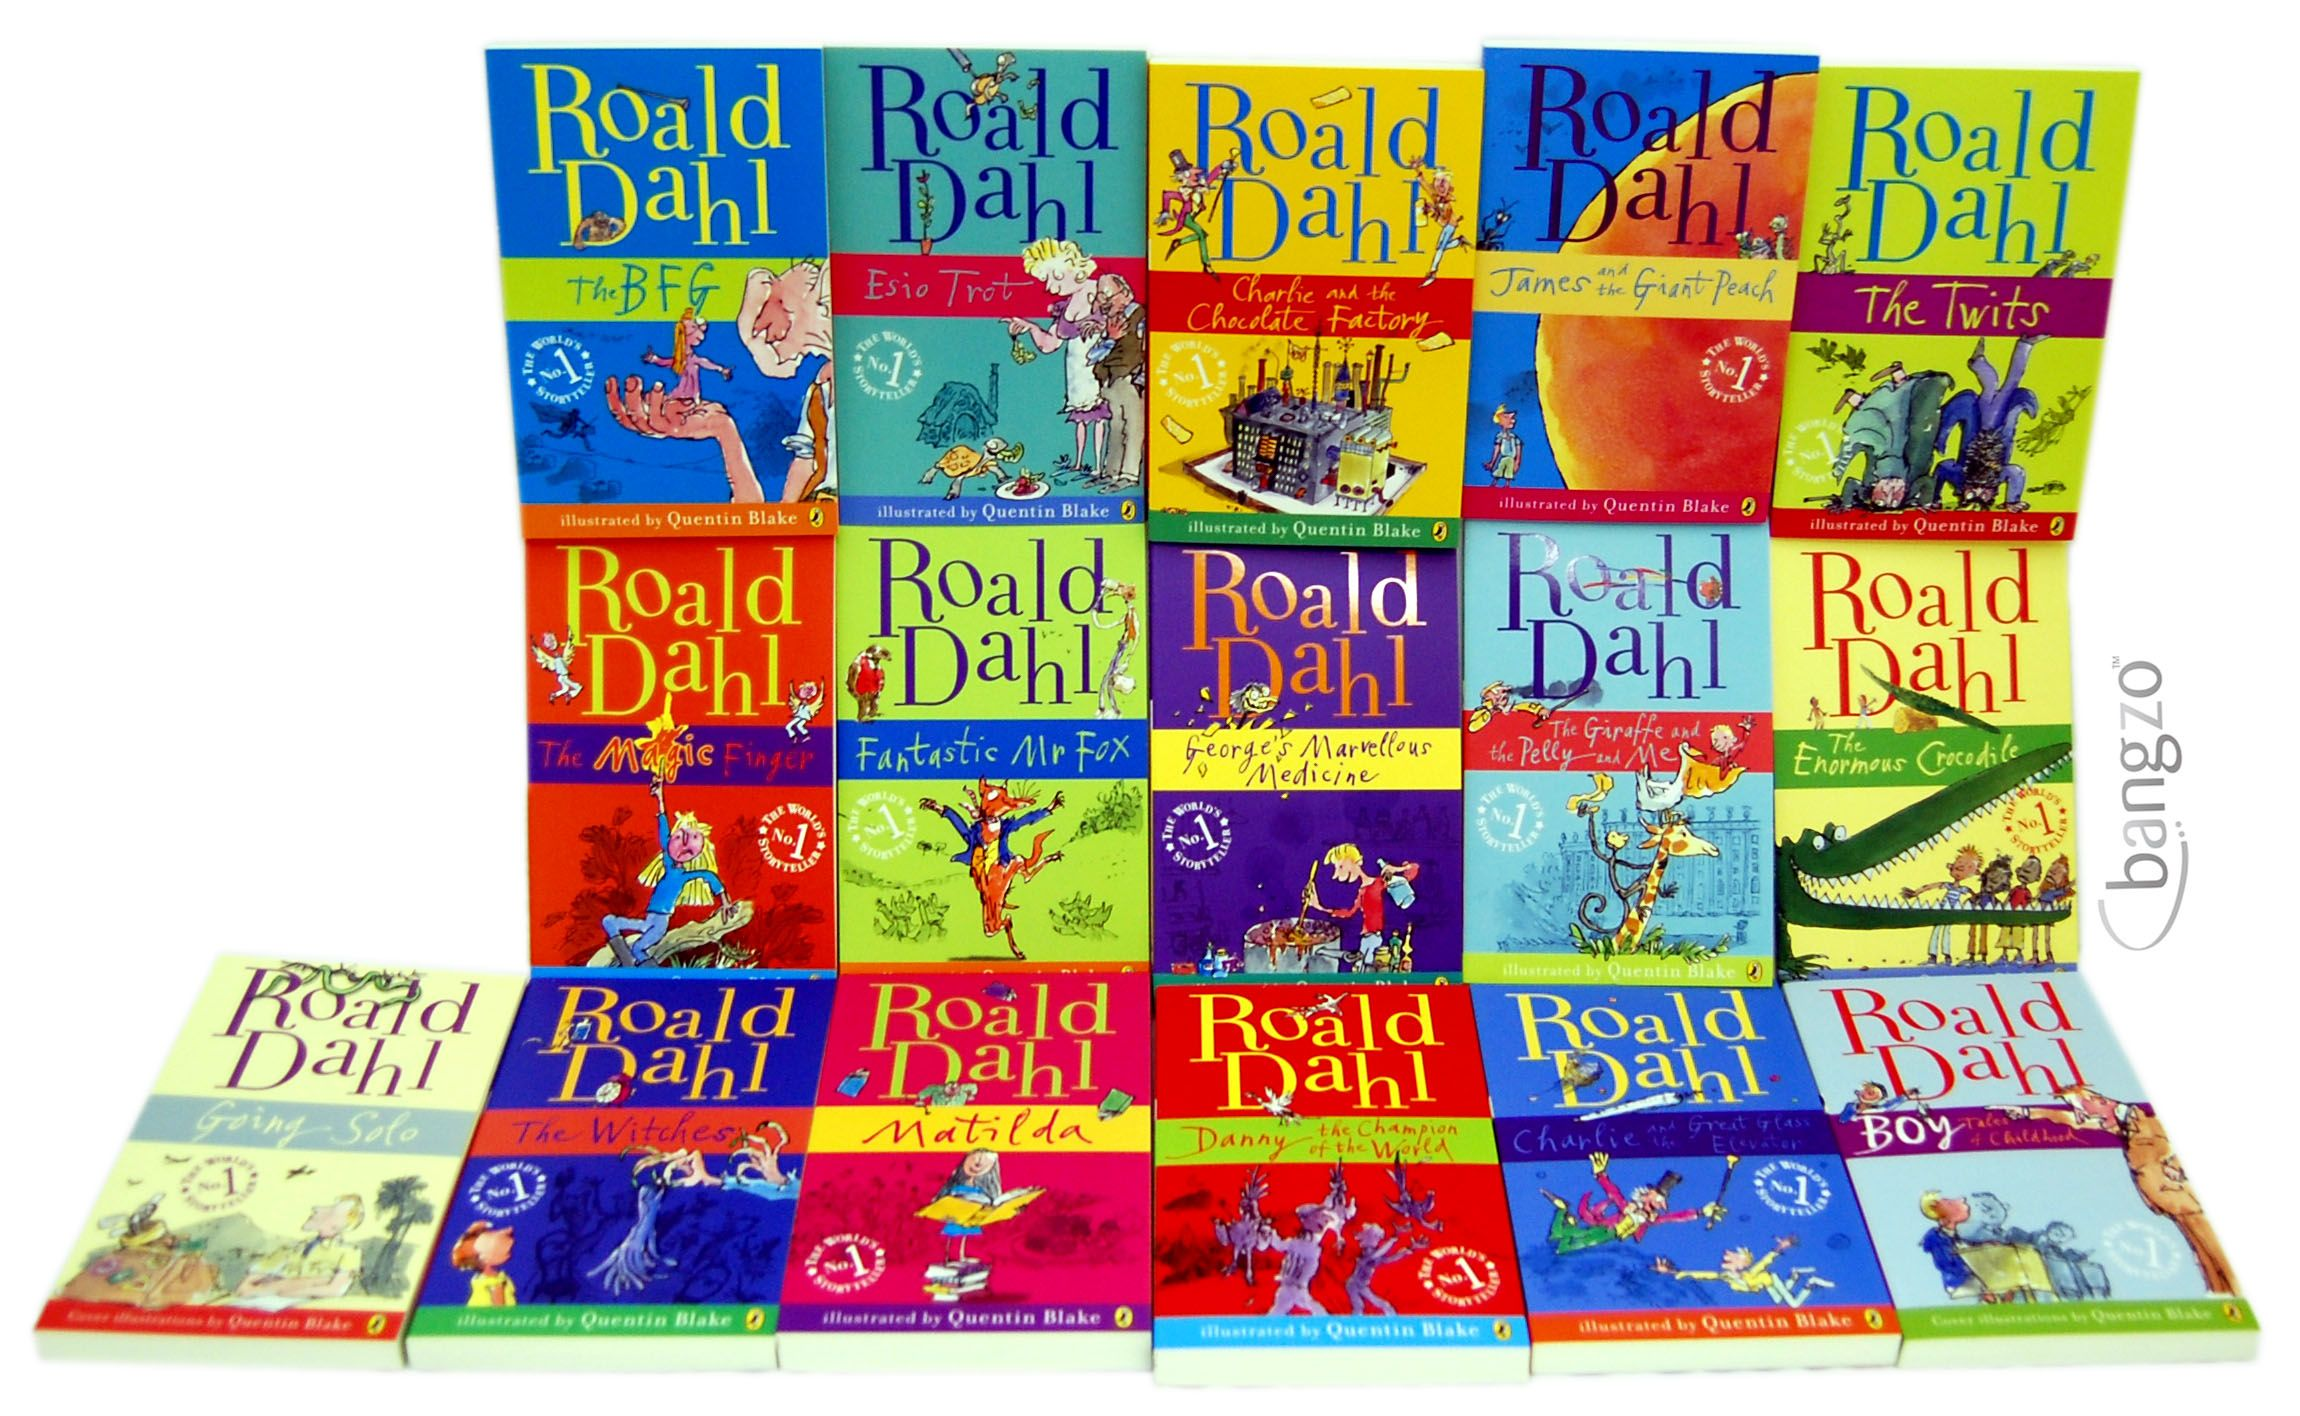 author project roald dahl Excellent thought provoking follow-up reading activities about this amazing author, plus a no-prep roald dahl project menu full of creative enrichment projects to extend what the students have learned about the author's biography and novels.